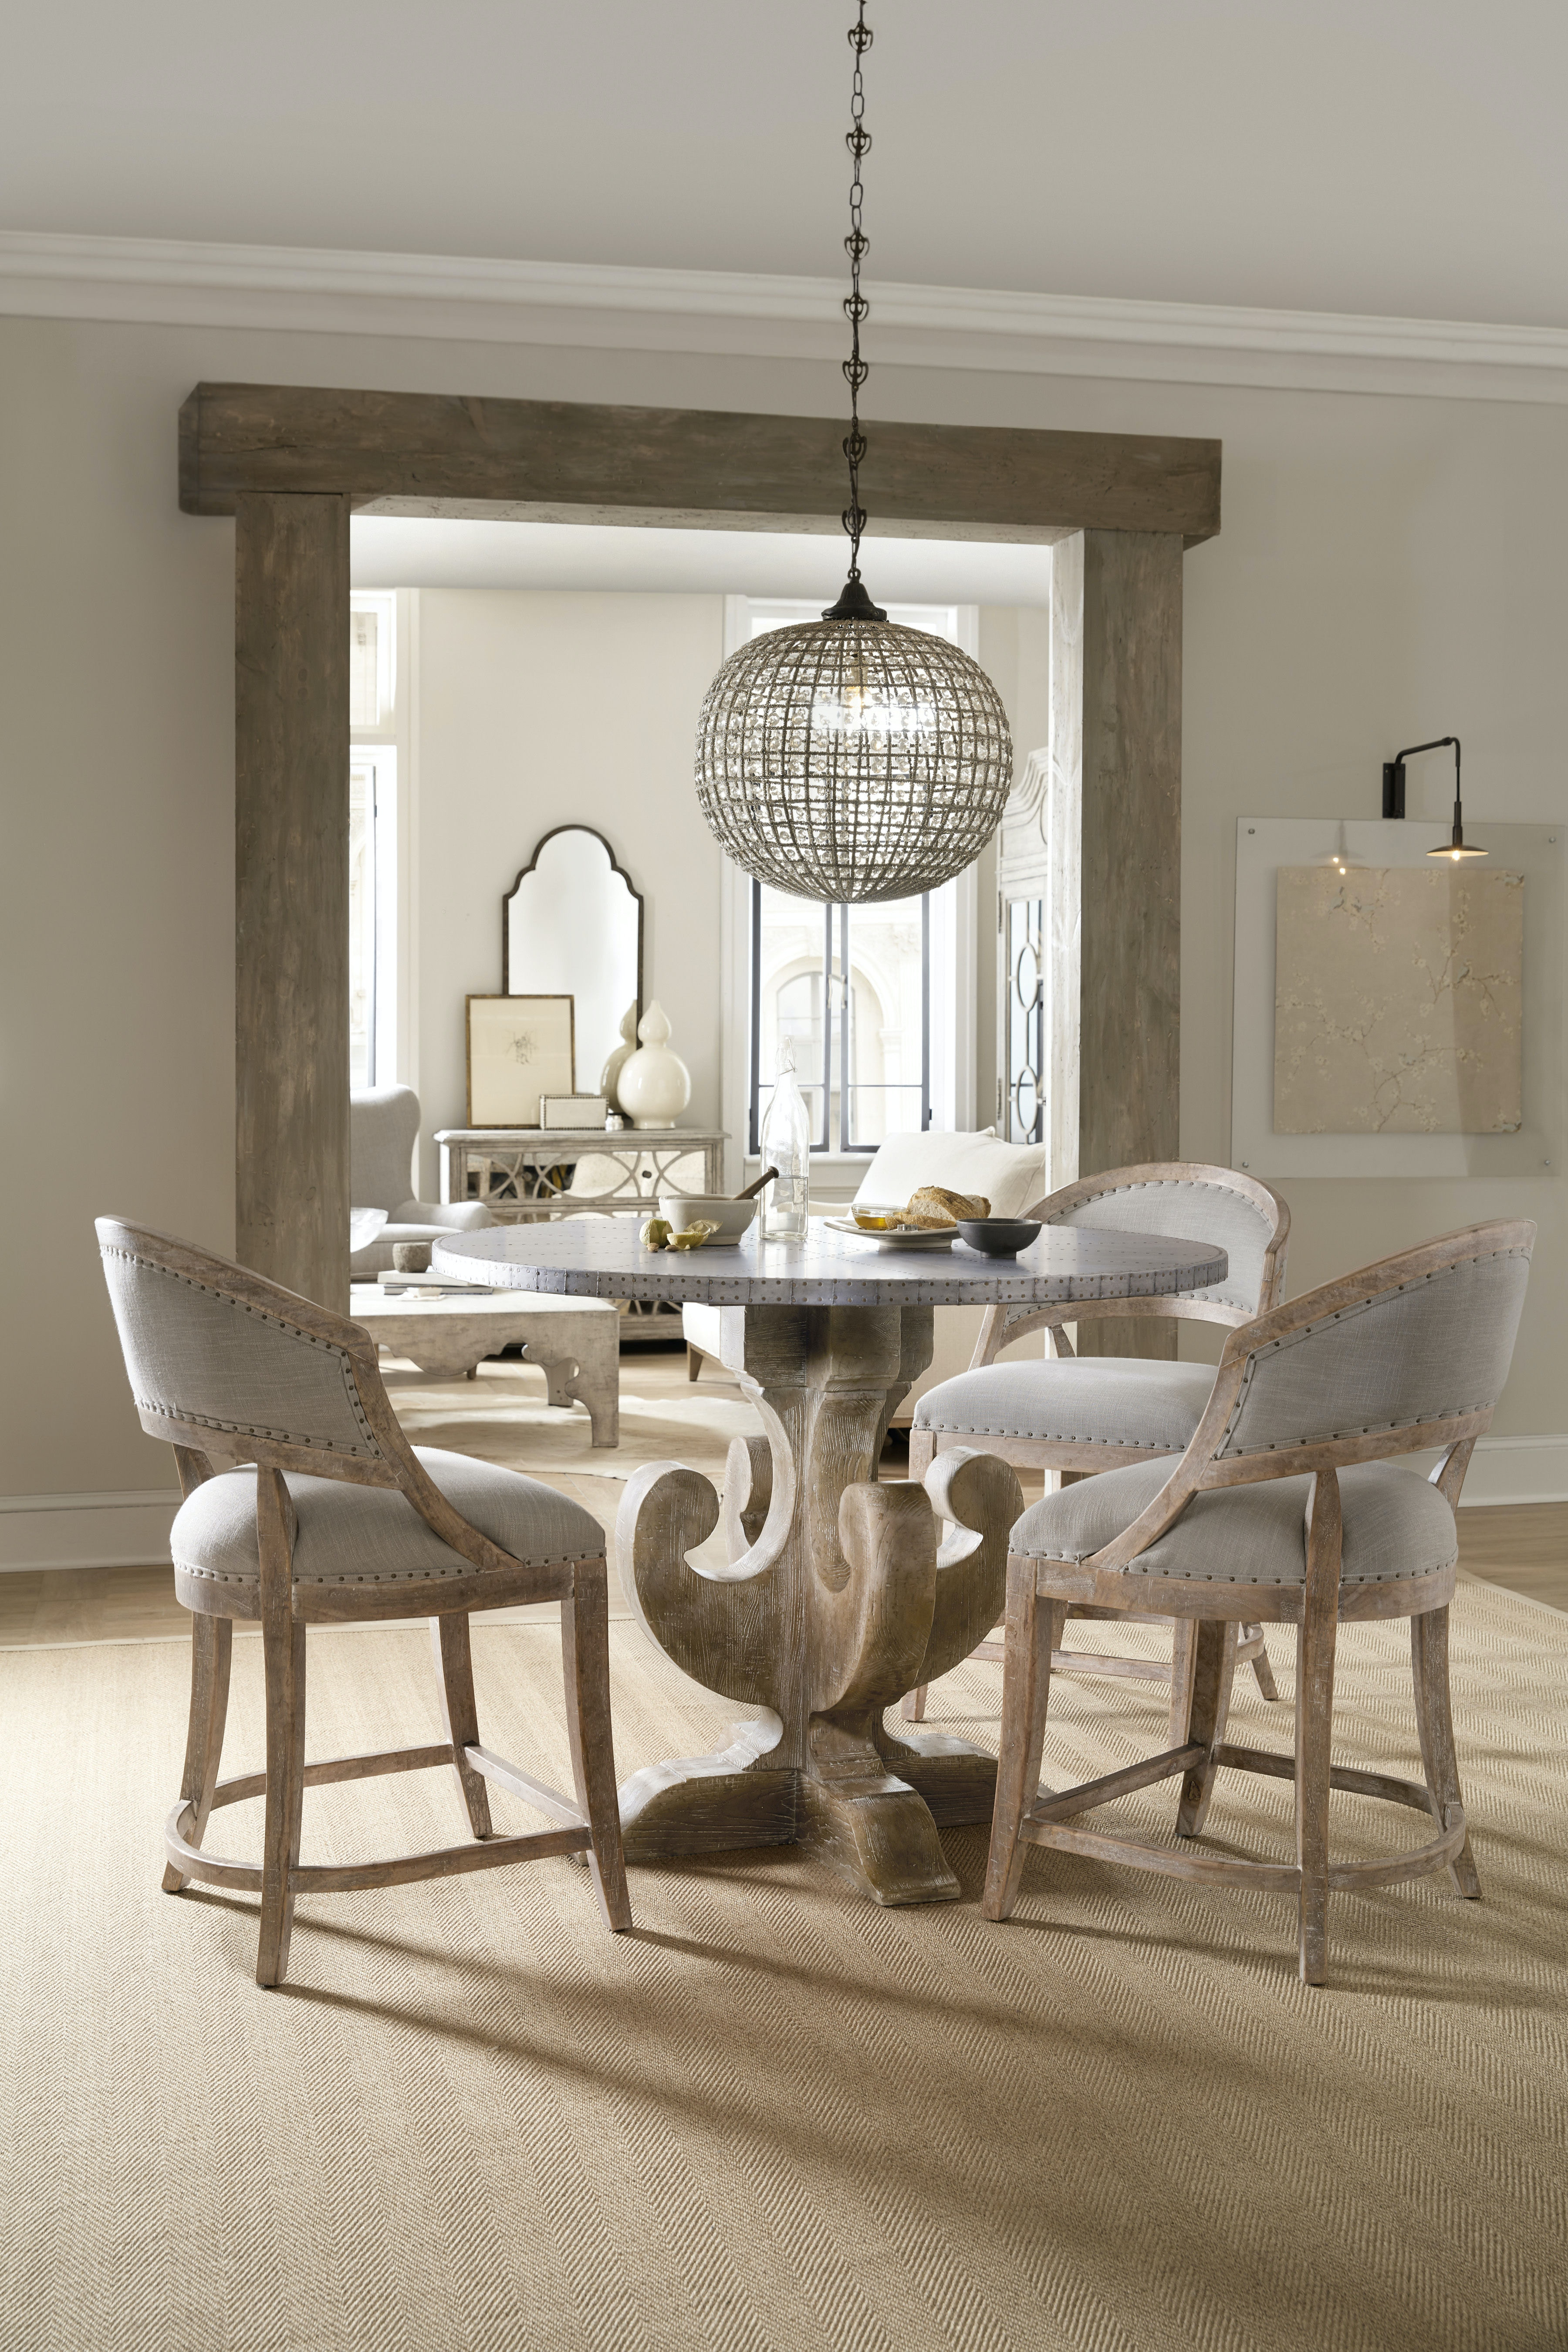 Hooker Furniture Dining Room Boheme Ascension 48in Wood  : 5750 75203 slv 25350 mwd room from www.norwoodfurniture.com size 1024 x 768 jpeg 49kB